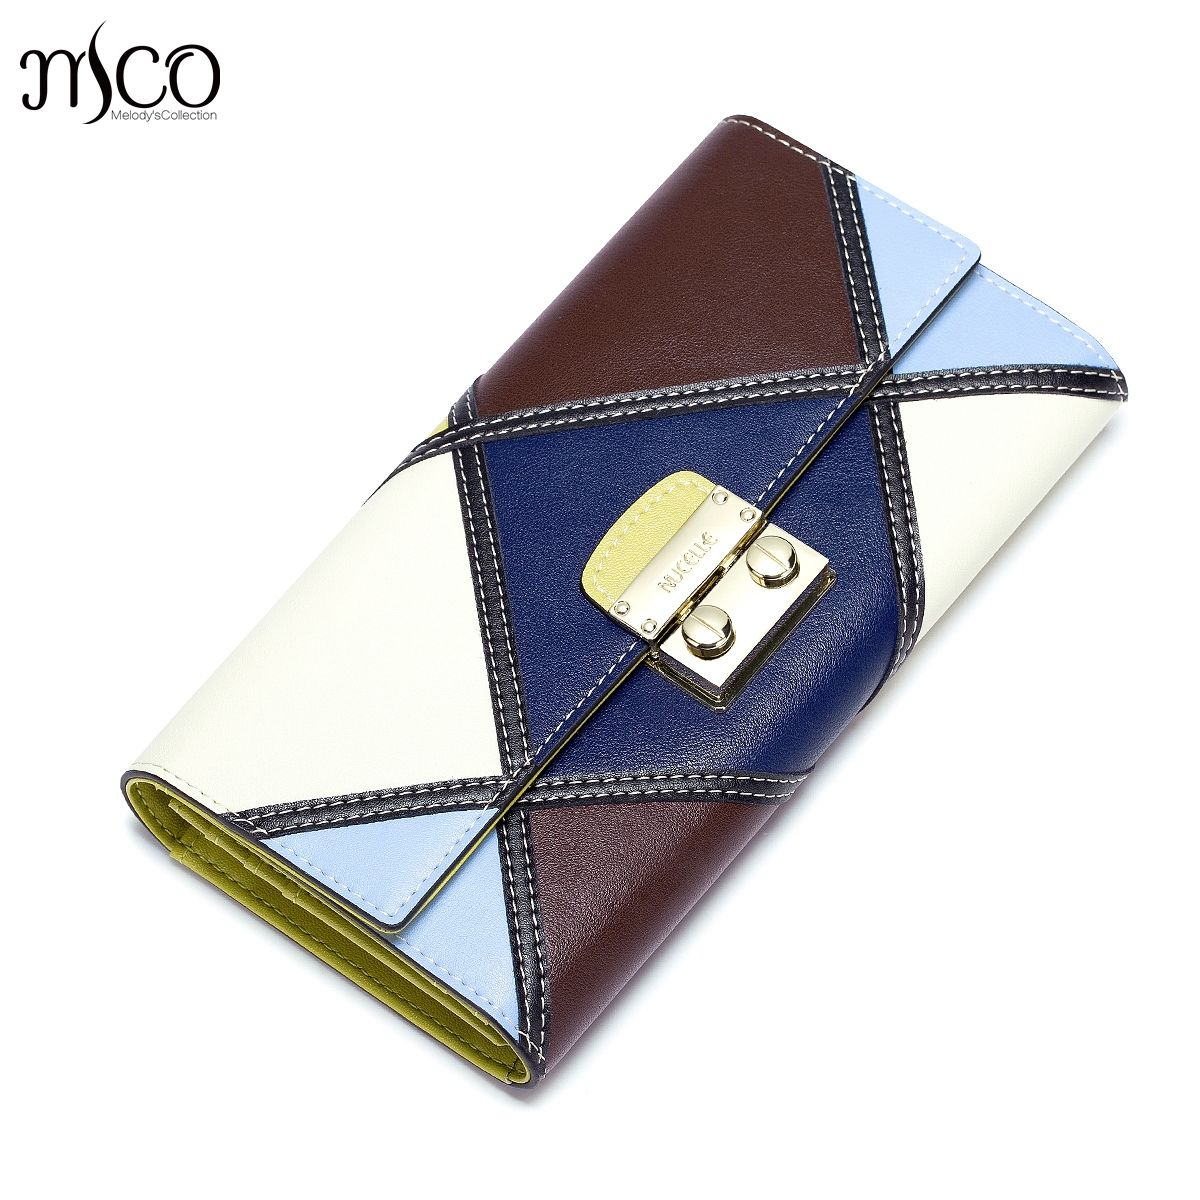 Genuine Leather Women Wallets Female Fashion Patchwork Cowhide Wallet Ladies Clutch Long Style Trifold Purse Money Clips